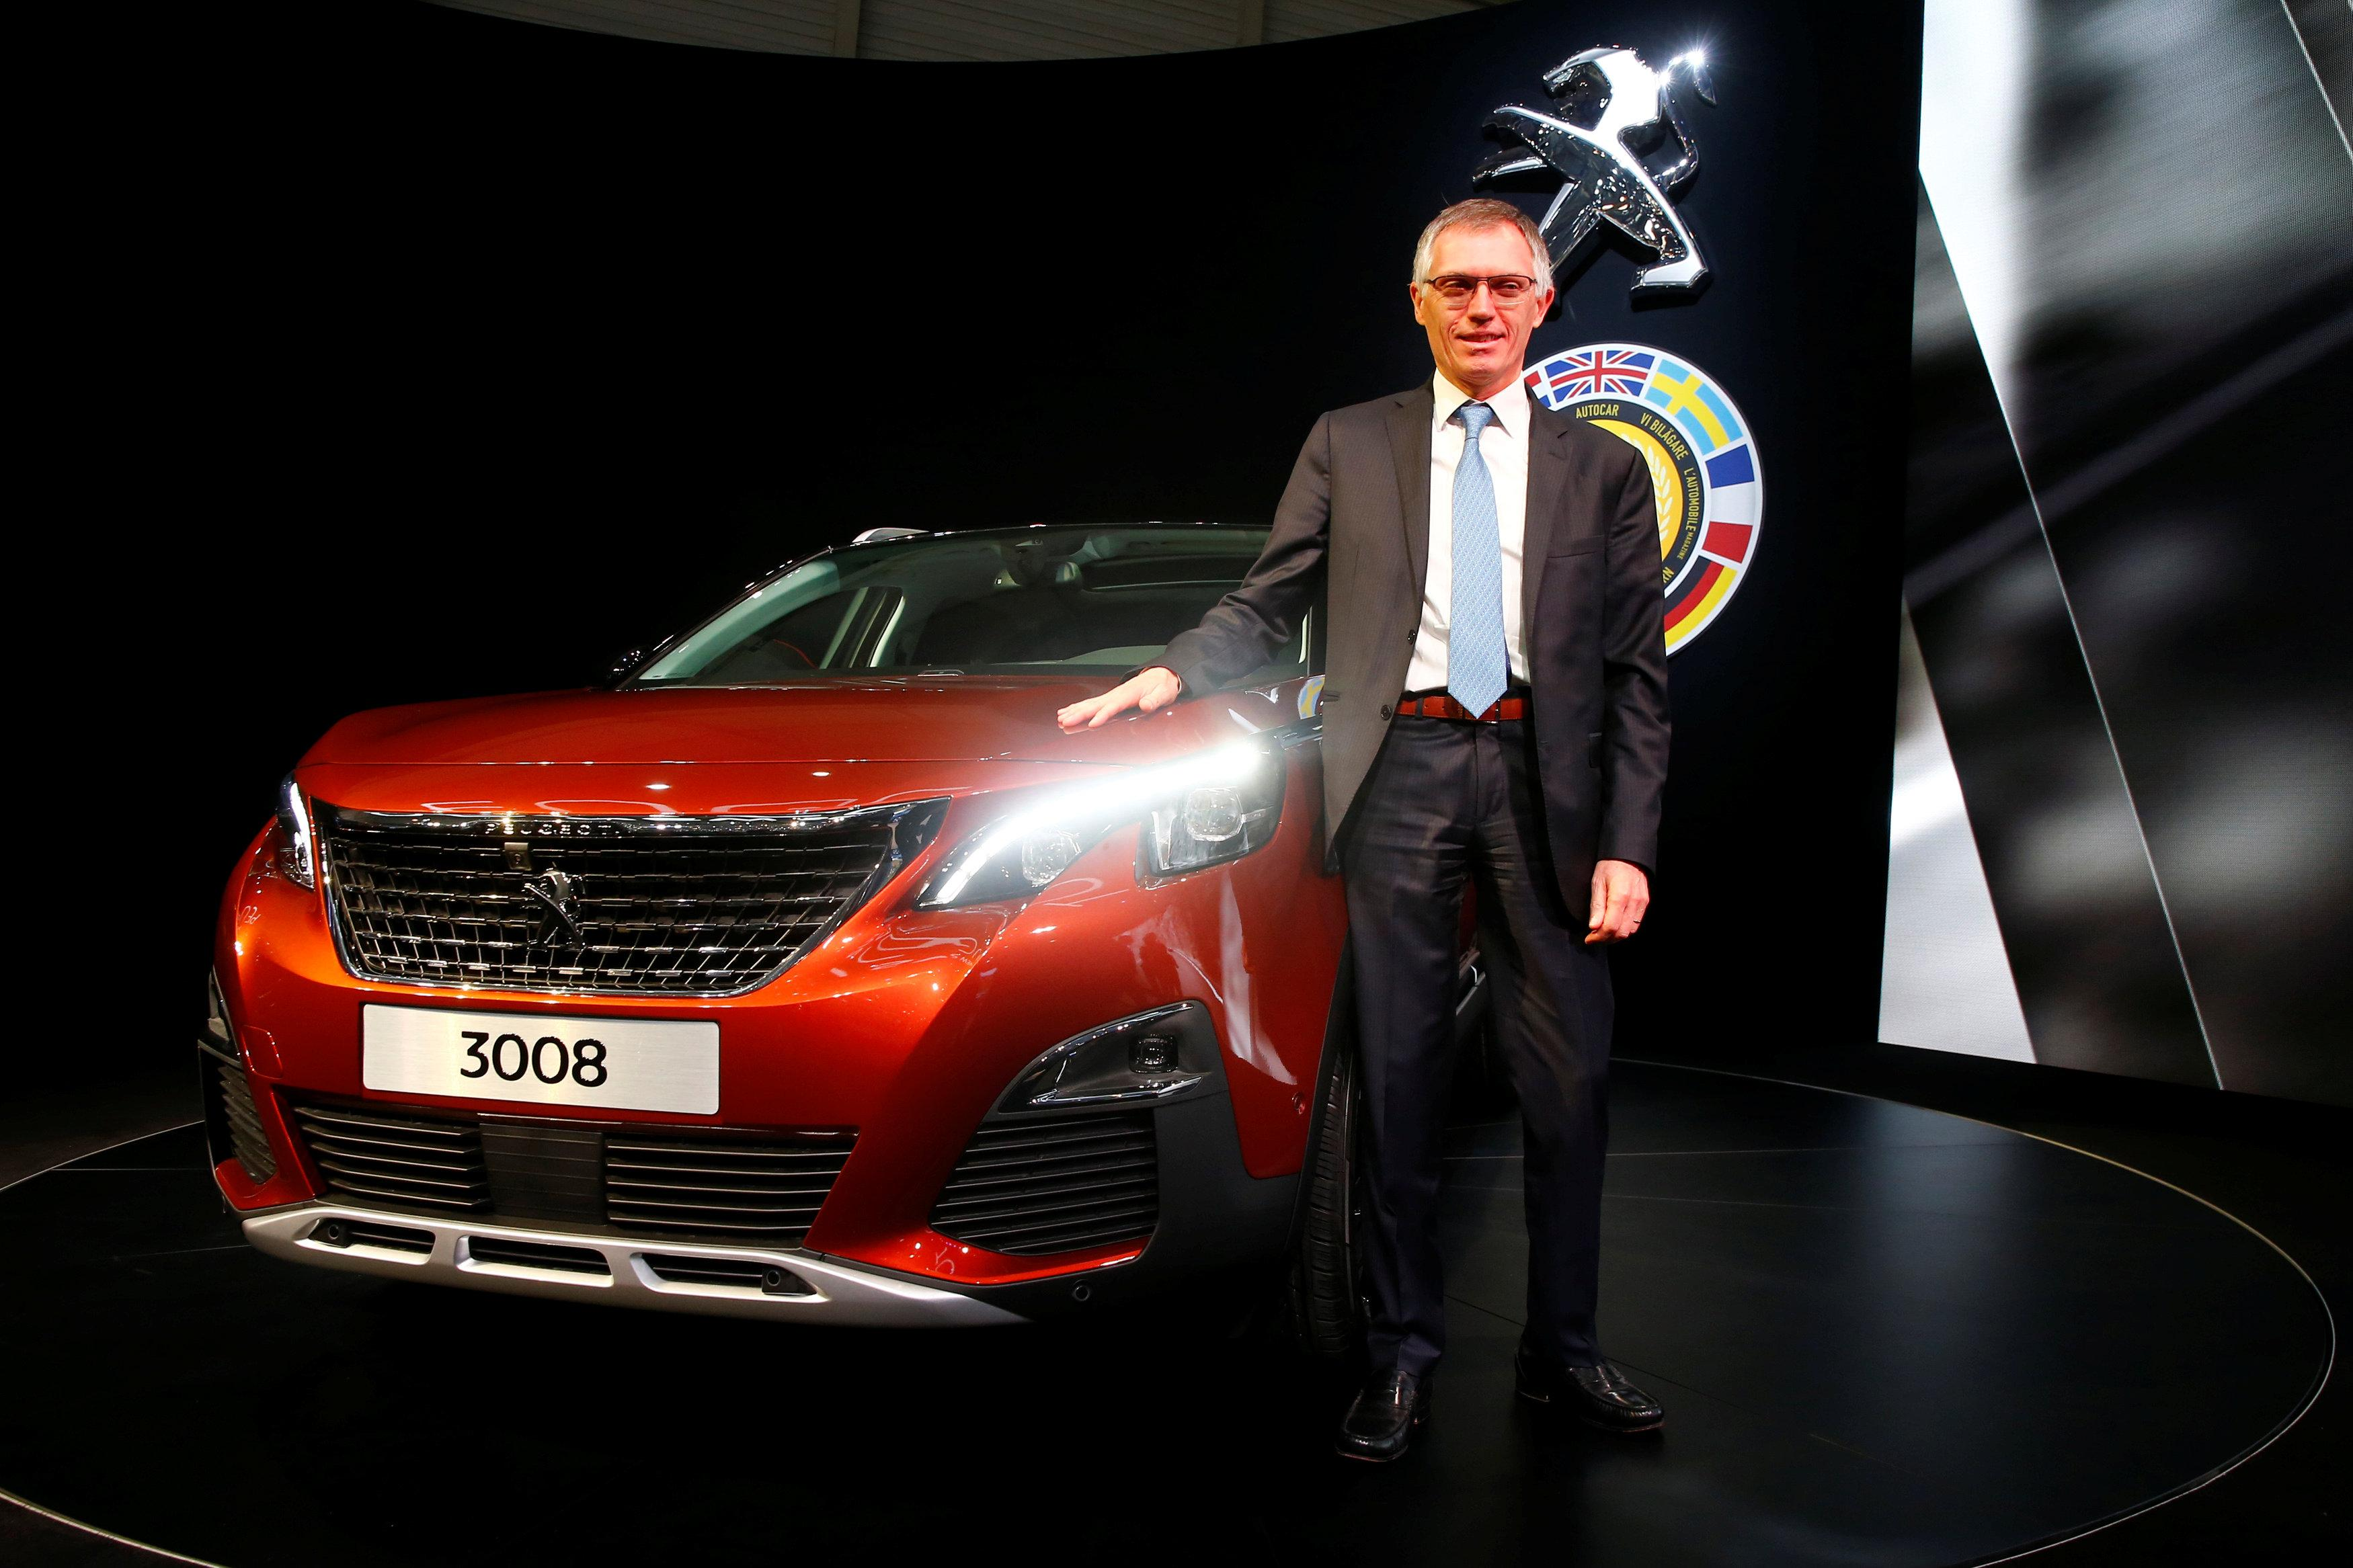 Carlos Tavares, CEO of PSA Peugeot Citroen, poses with the Car of the Year Peugeot 3008 during the 87th International Motor Show at Palexpo in Geneva, Switzerland, March 7, 2017. Arnd Wiegmann